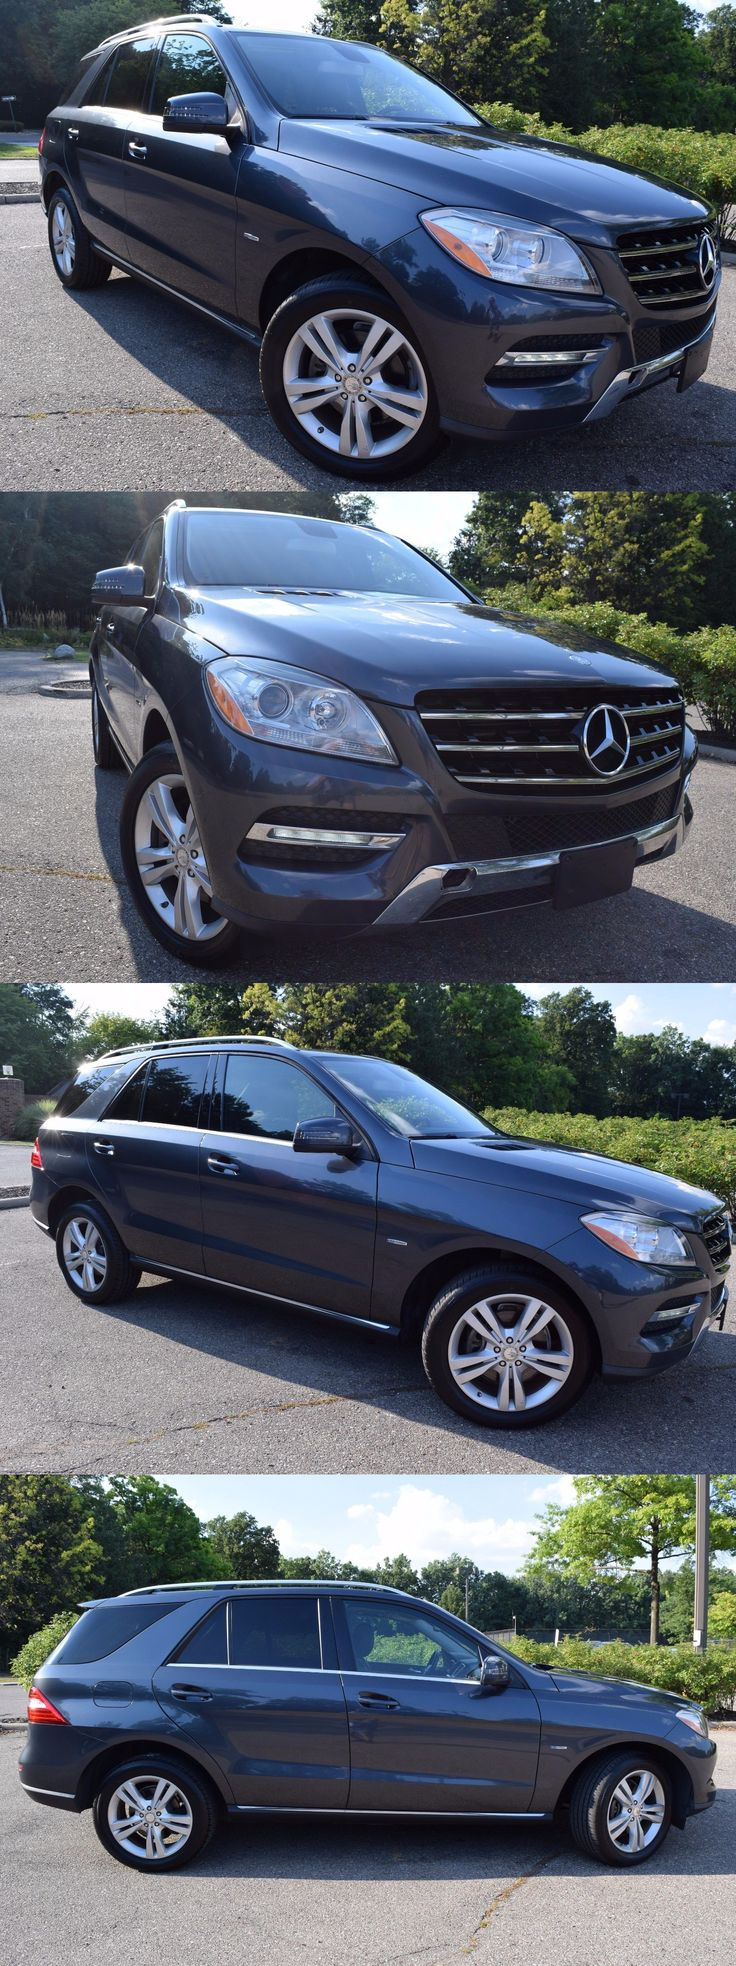 SUVs: 2012 Mercedes-Benz M-Class Awd-Edition(4Matic) Ml-Class Suv 2012 Mercedes-Benz Ml350 M-Class 3.5L Awd Navigation Sunroof 19 Camera Leather -> BUY IT NOW ONLY: $14200 on eBay!